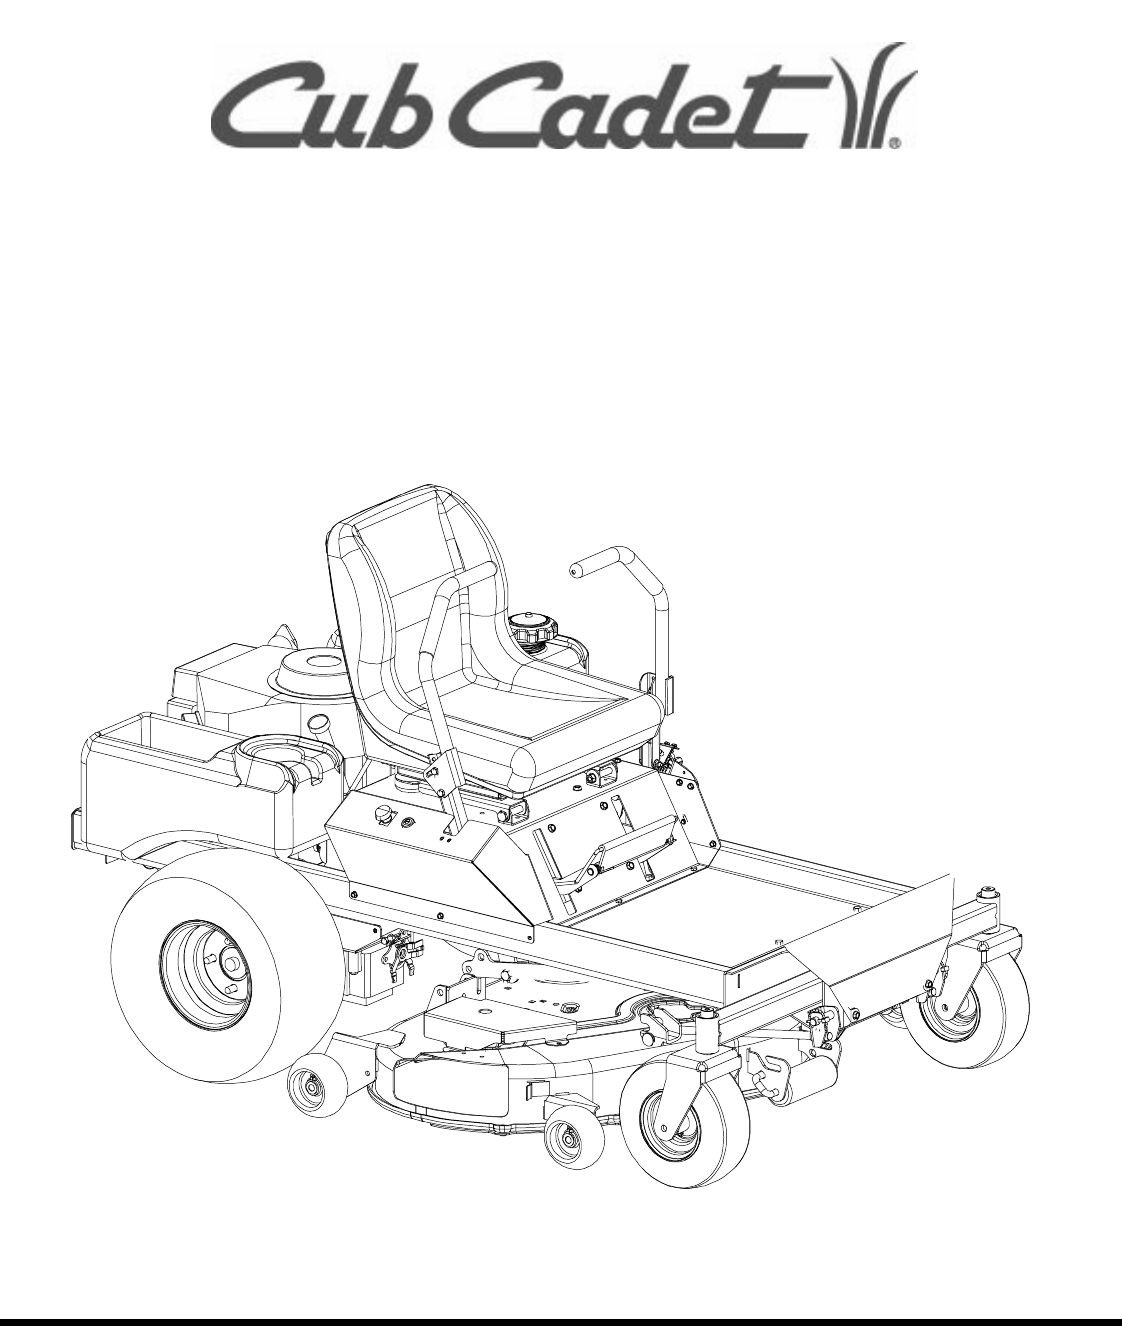 wiring diagram for cub cadet 1320 wiring diagram for cub